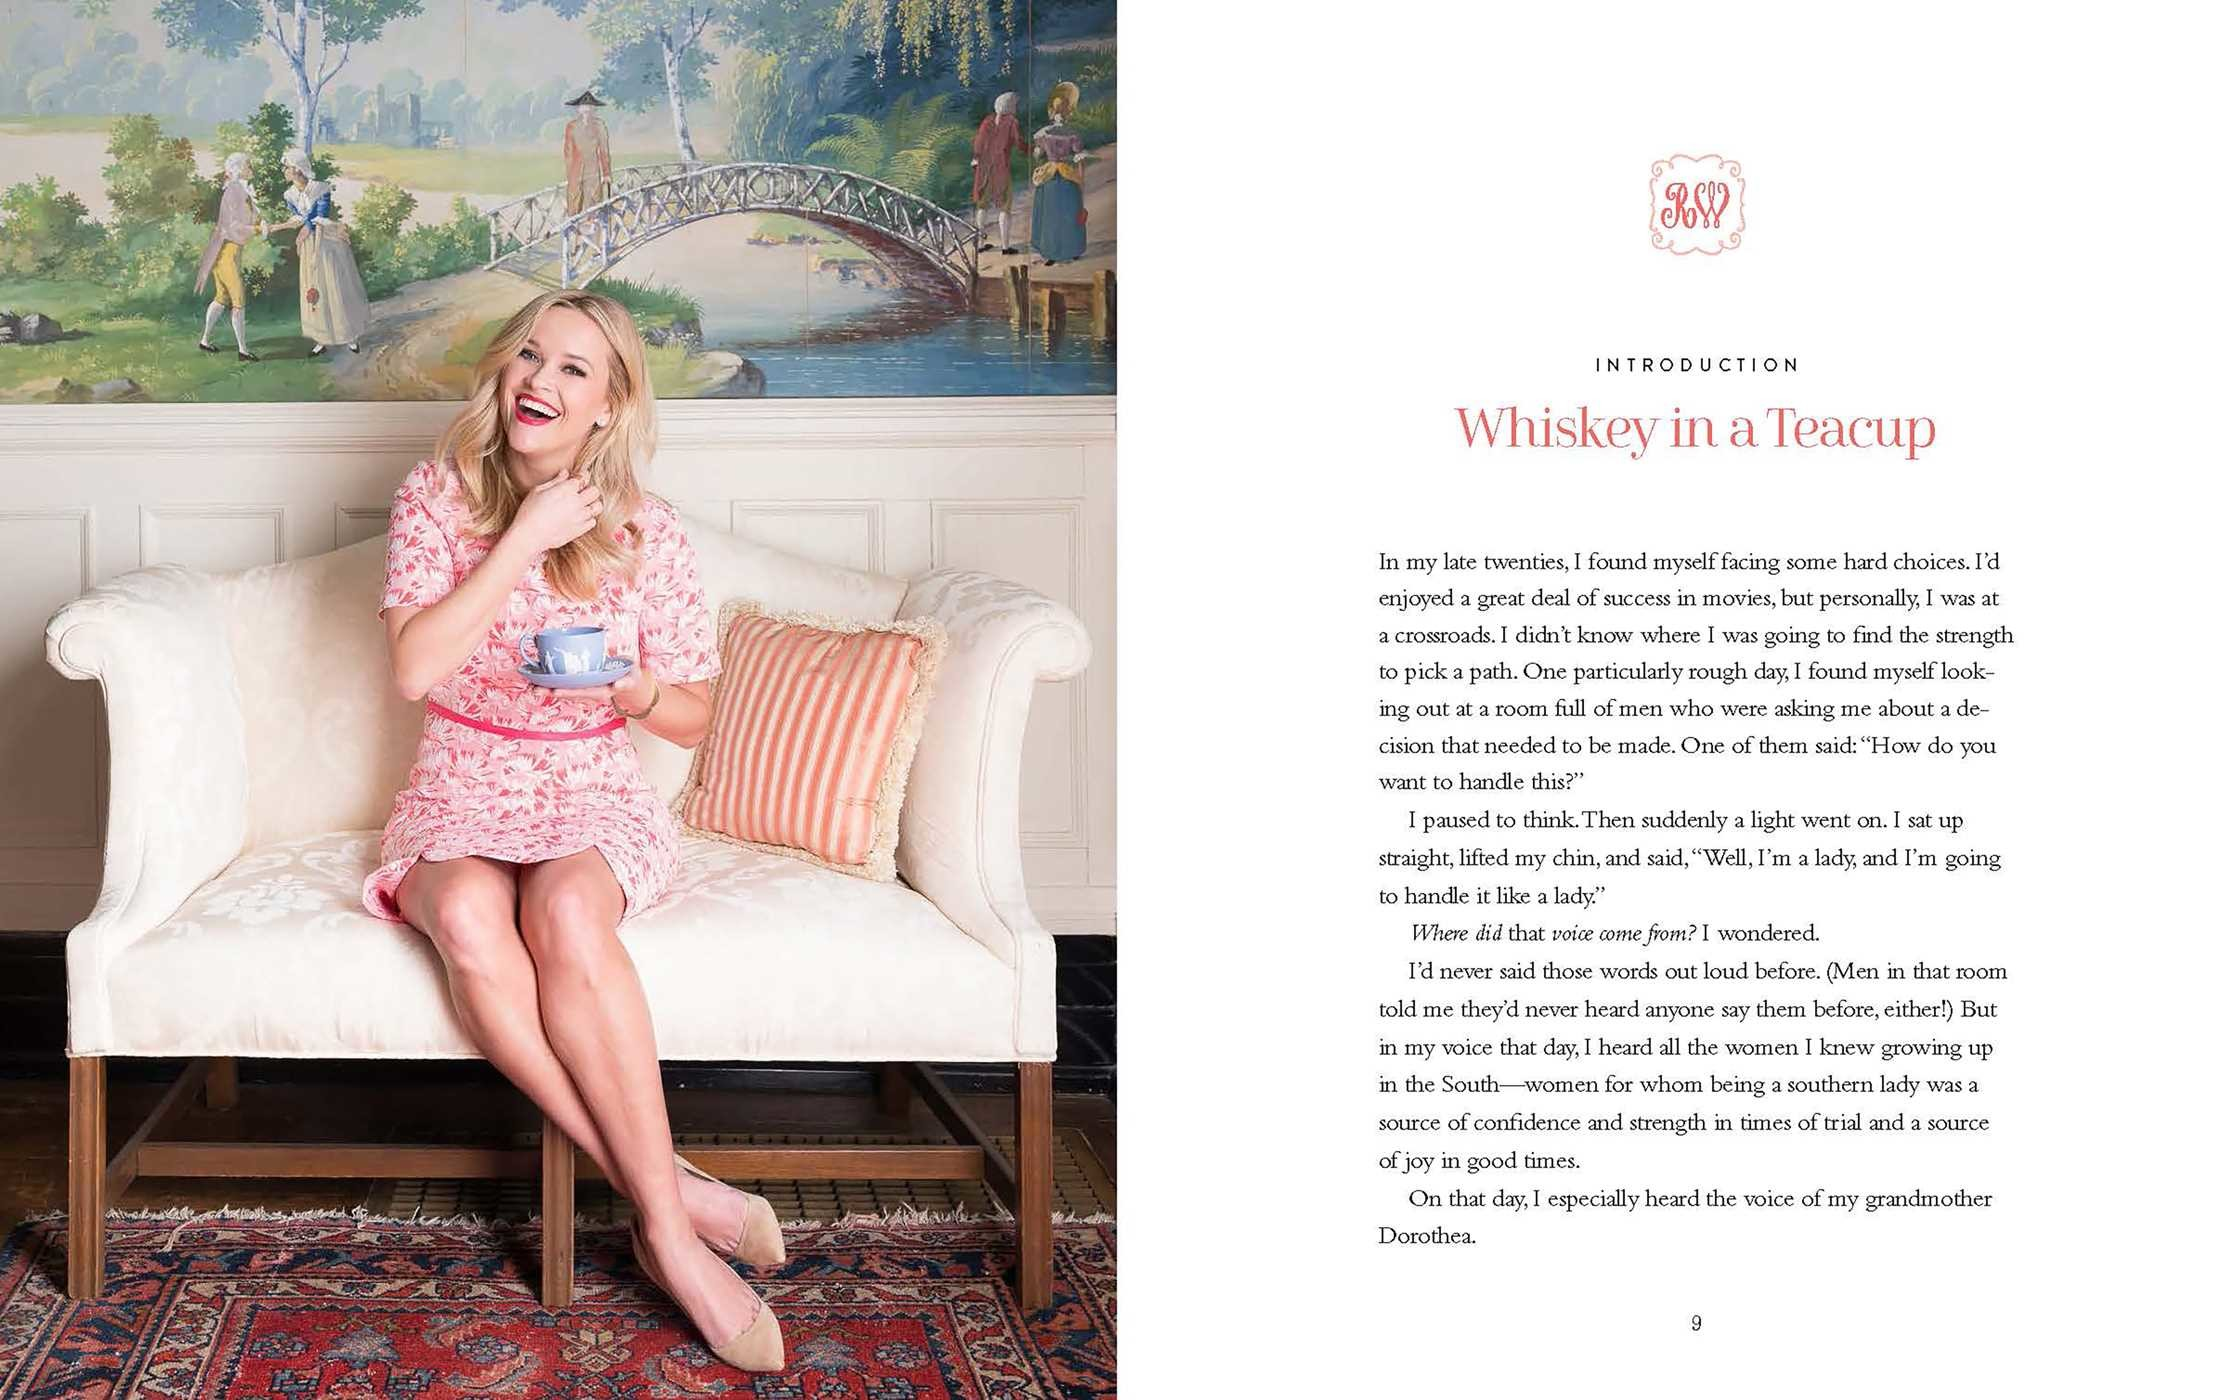 Whisky in a teacup by Reese Witherspoon